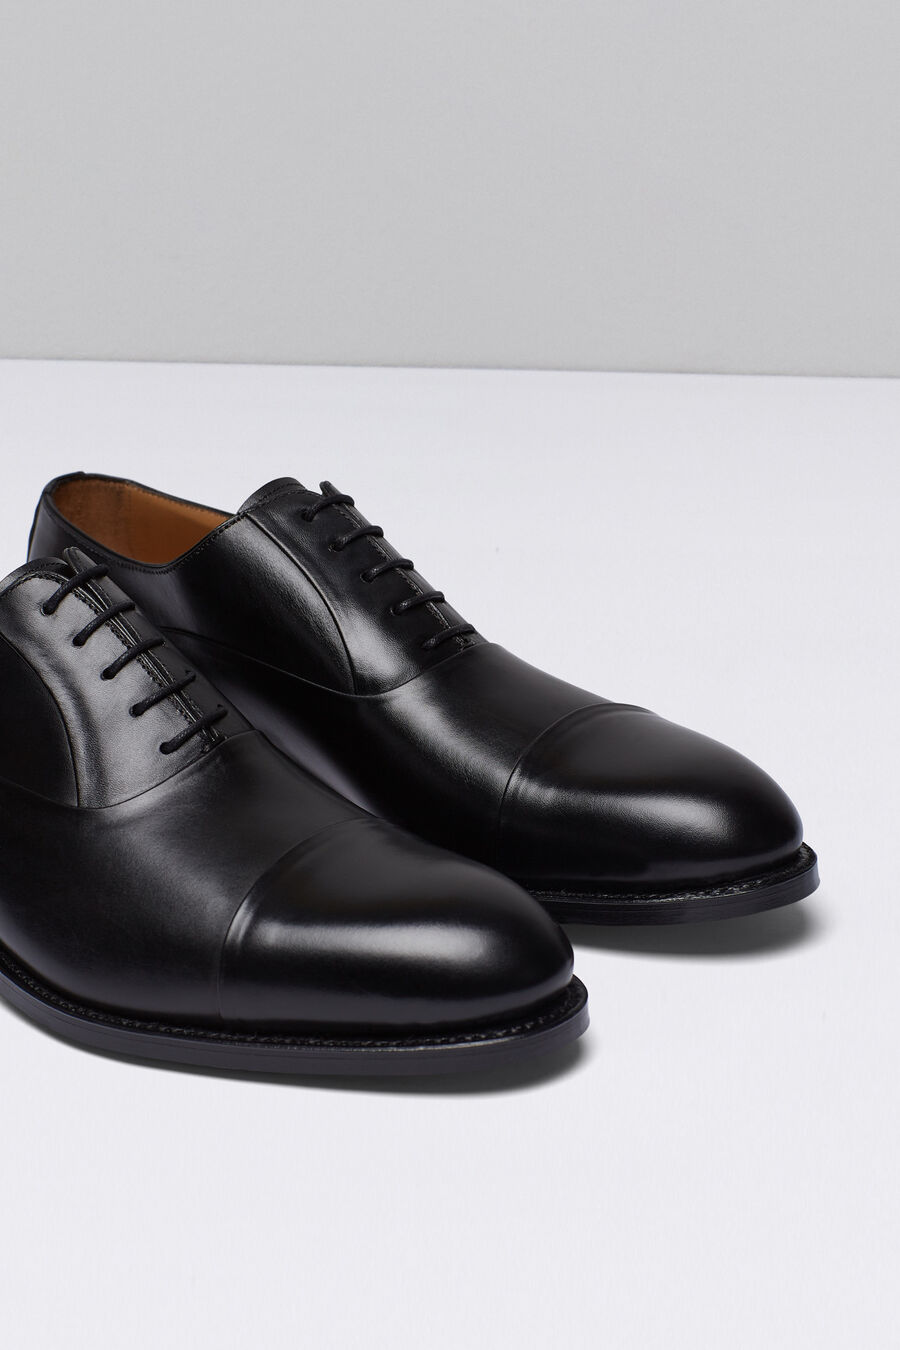 Oxford shoes with straight uppers